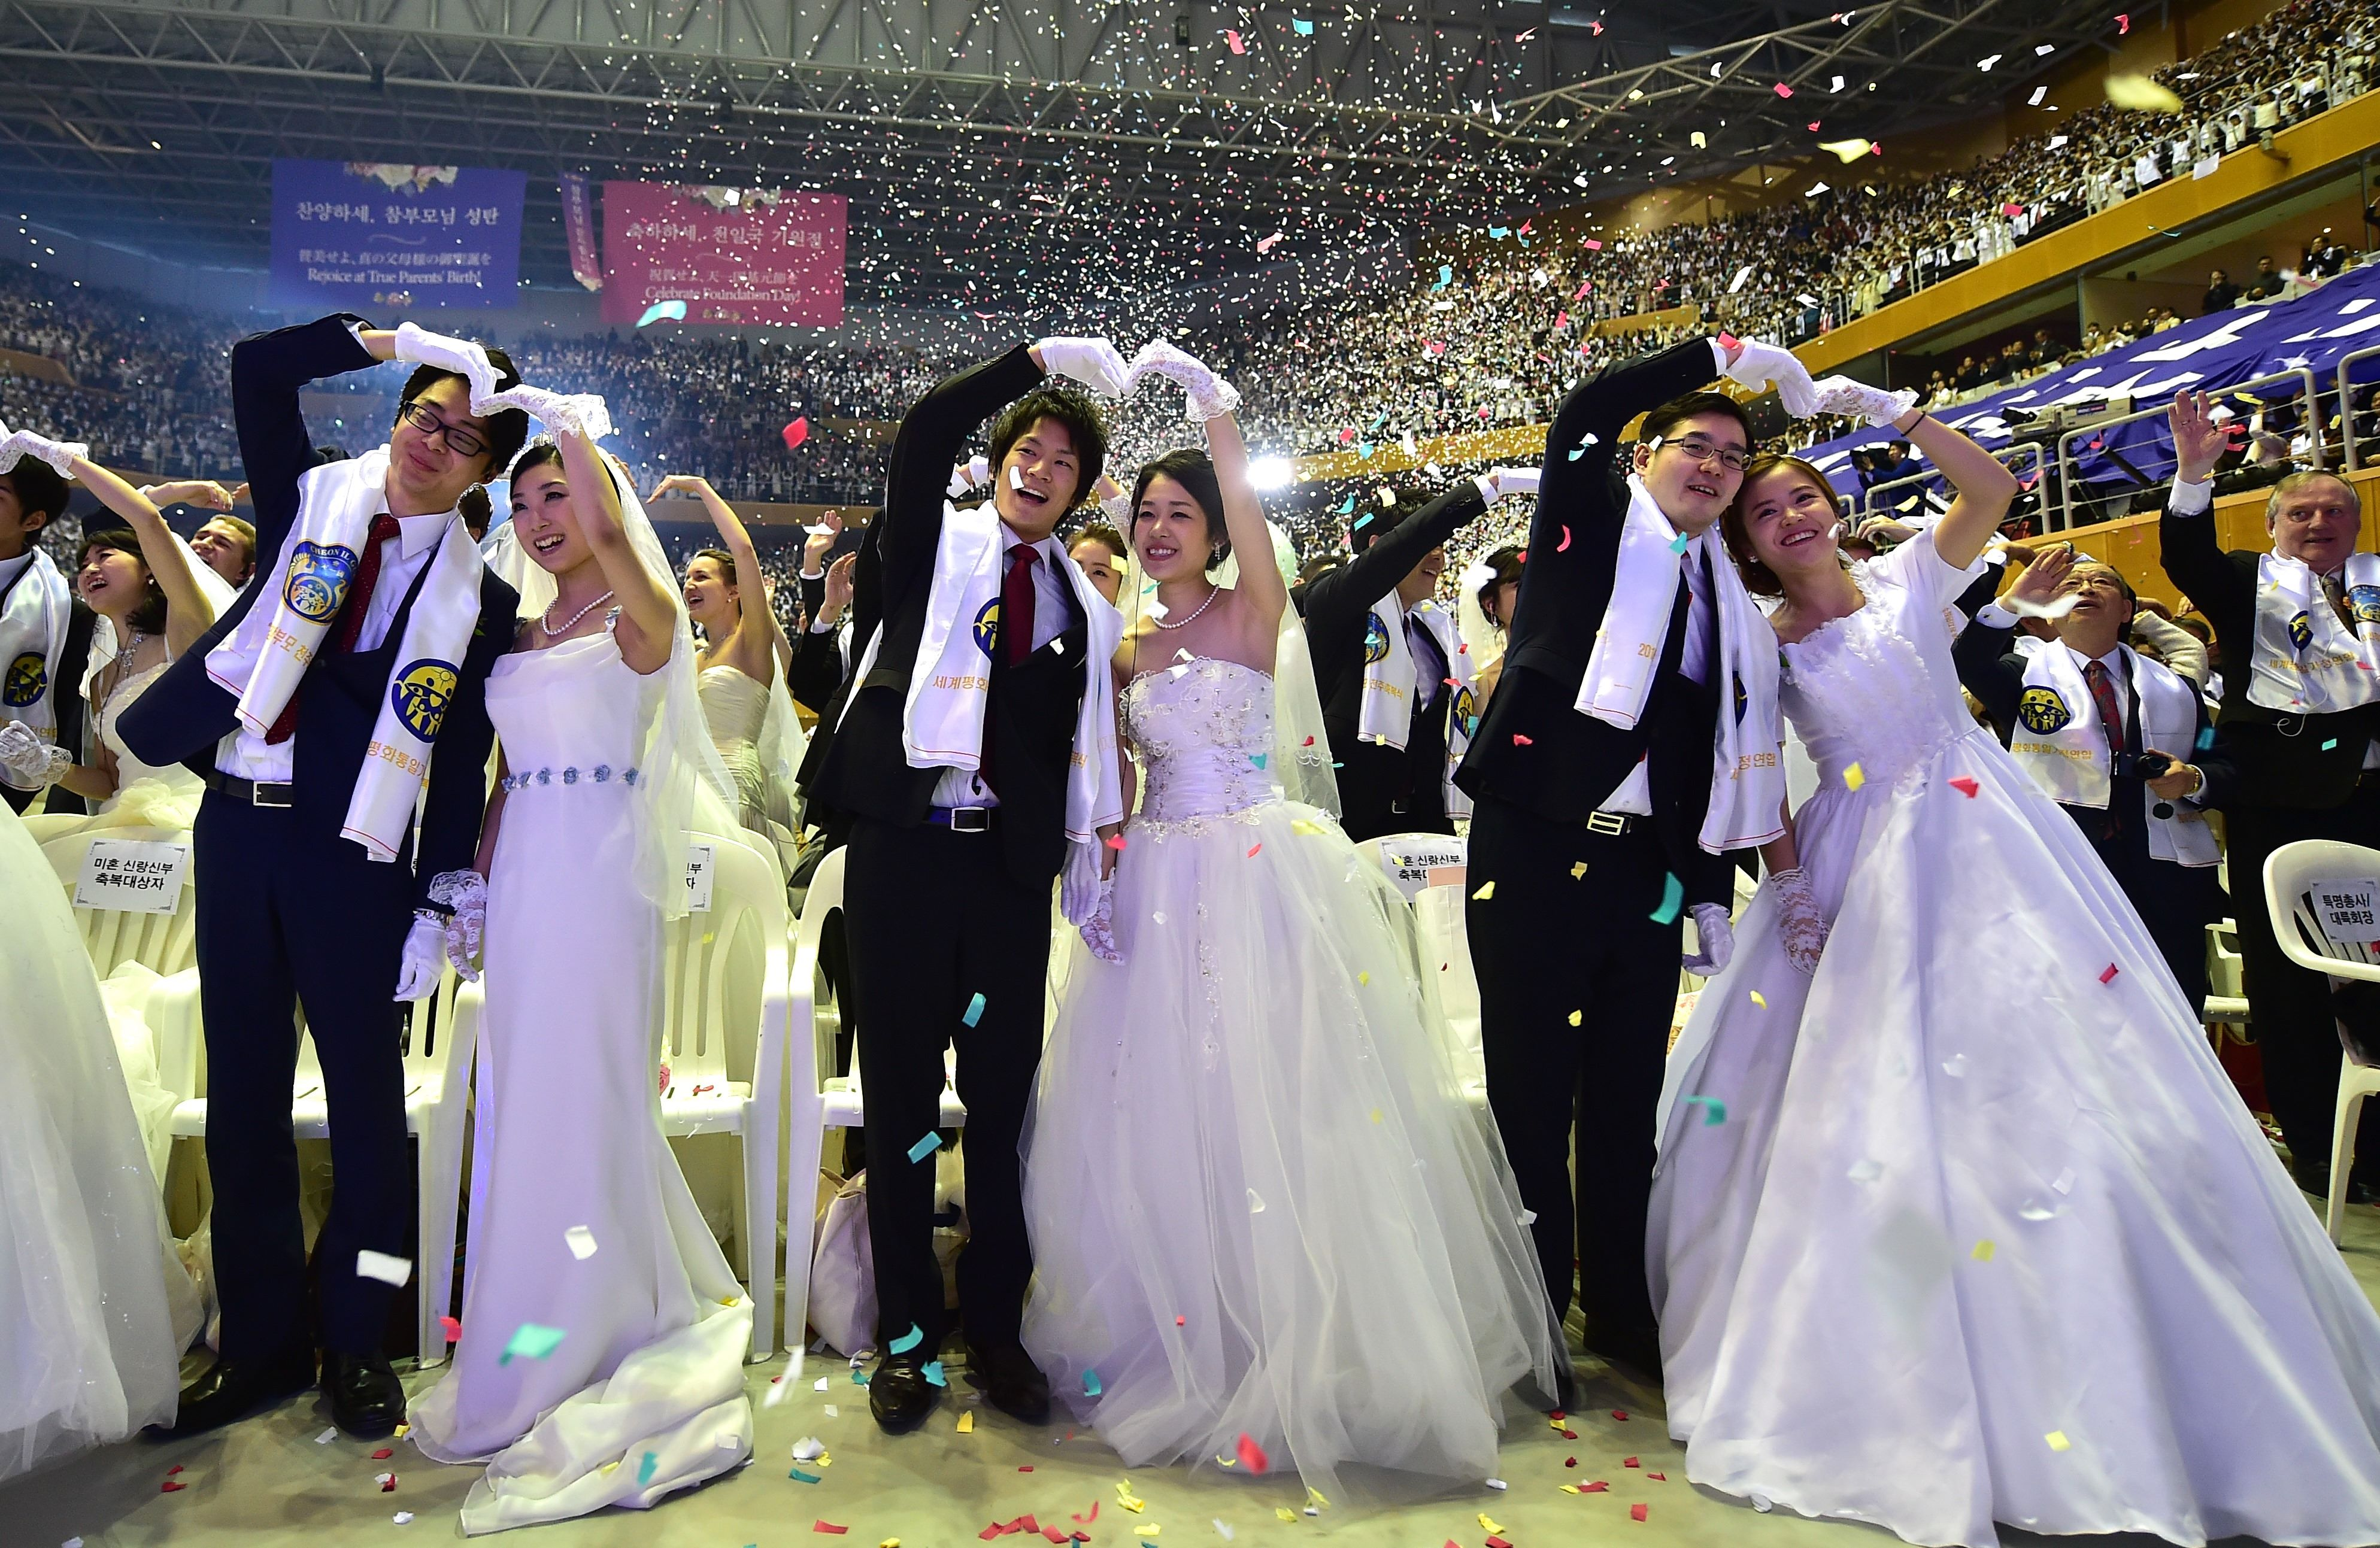 "Couples celebrate during a mass wedding held by the Unification Church at Cheongshim Peace World Center in Gapyeong, east of Seoul, on February 20, 2016. Hundreds of couples were married at the South Korean headquarters of the Unification Church. The Unification Church, set up by Sun Myung Moon in Seoul in 1954, is one of the world's most controversial religious organisations, and its devotees are often dubbed ""Moonies"" after the founder. AFP PHOTO / JUNG YEON-JE SKOREA--RELIGION-UNIFICATION-MARRIAGE"